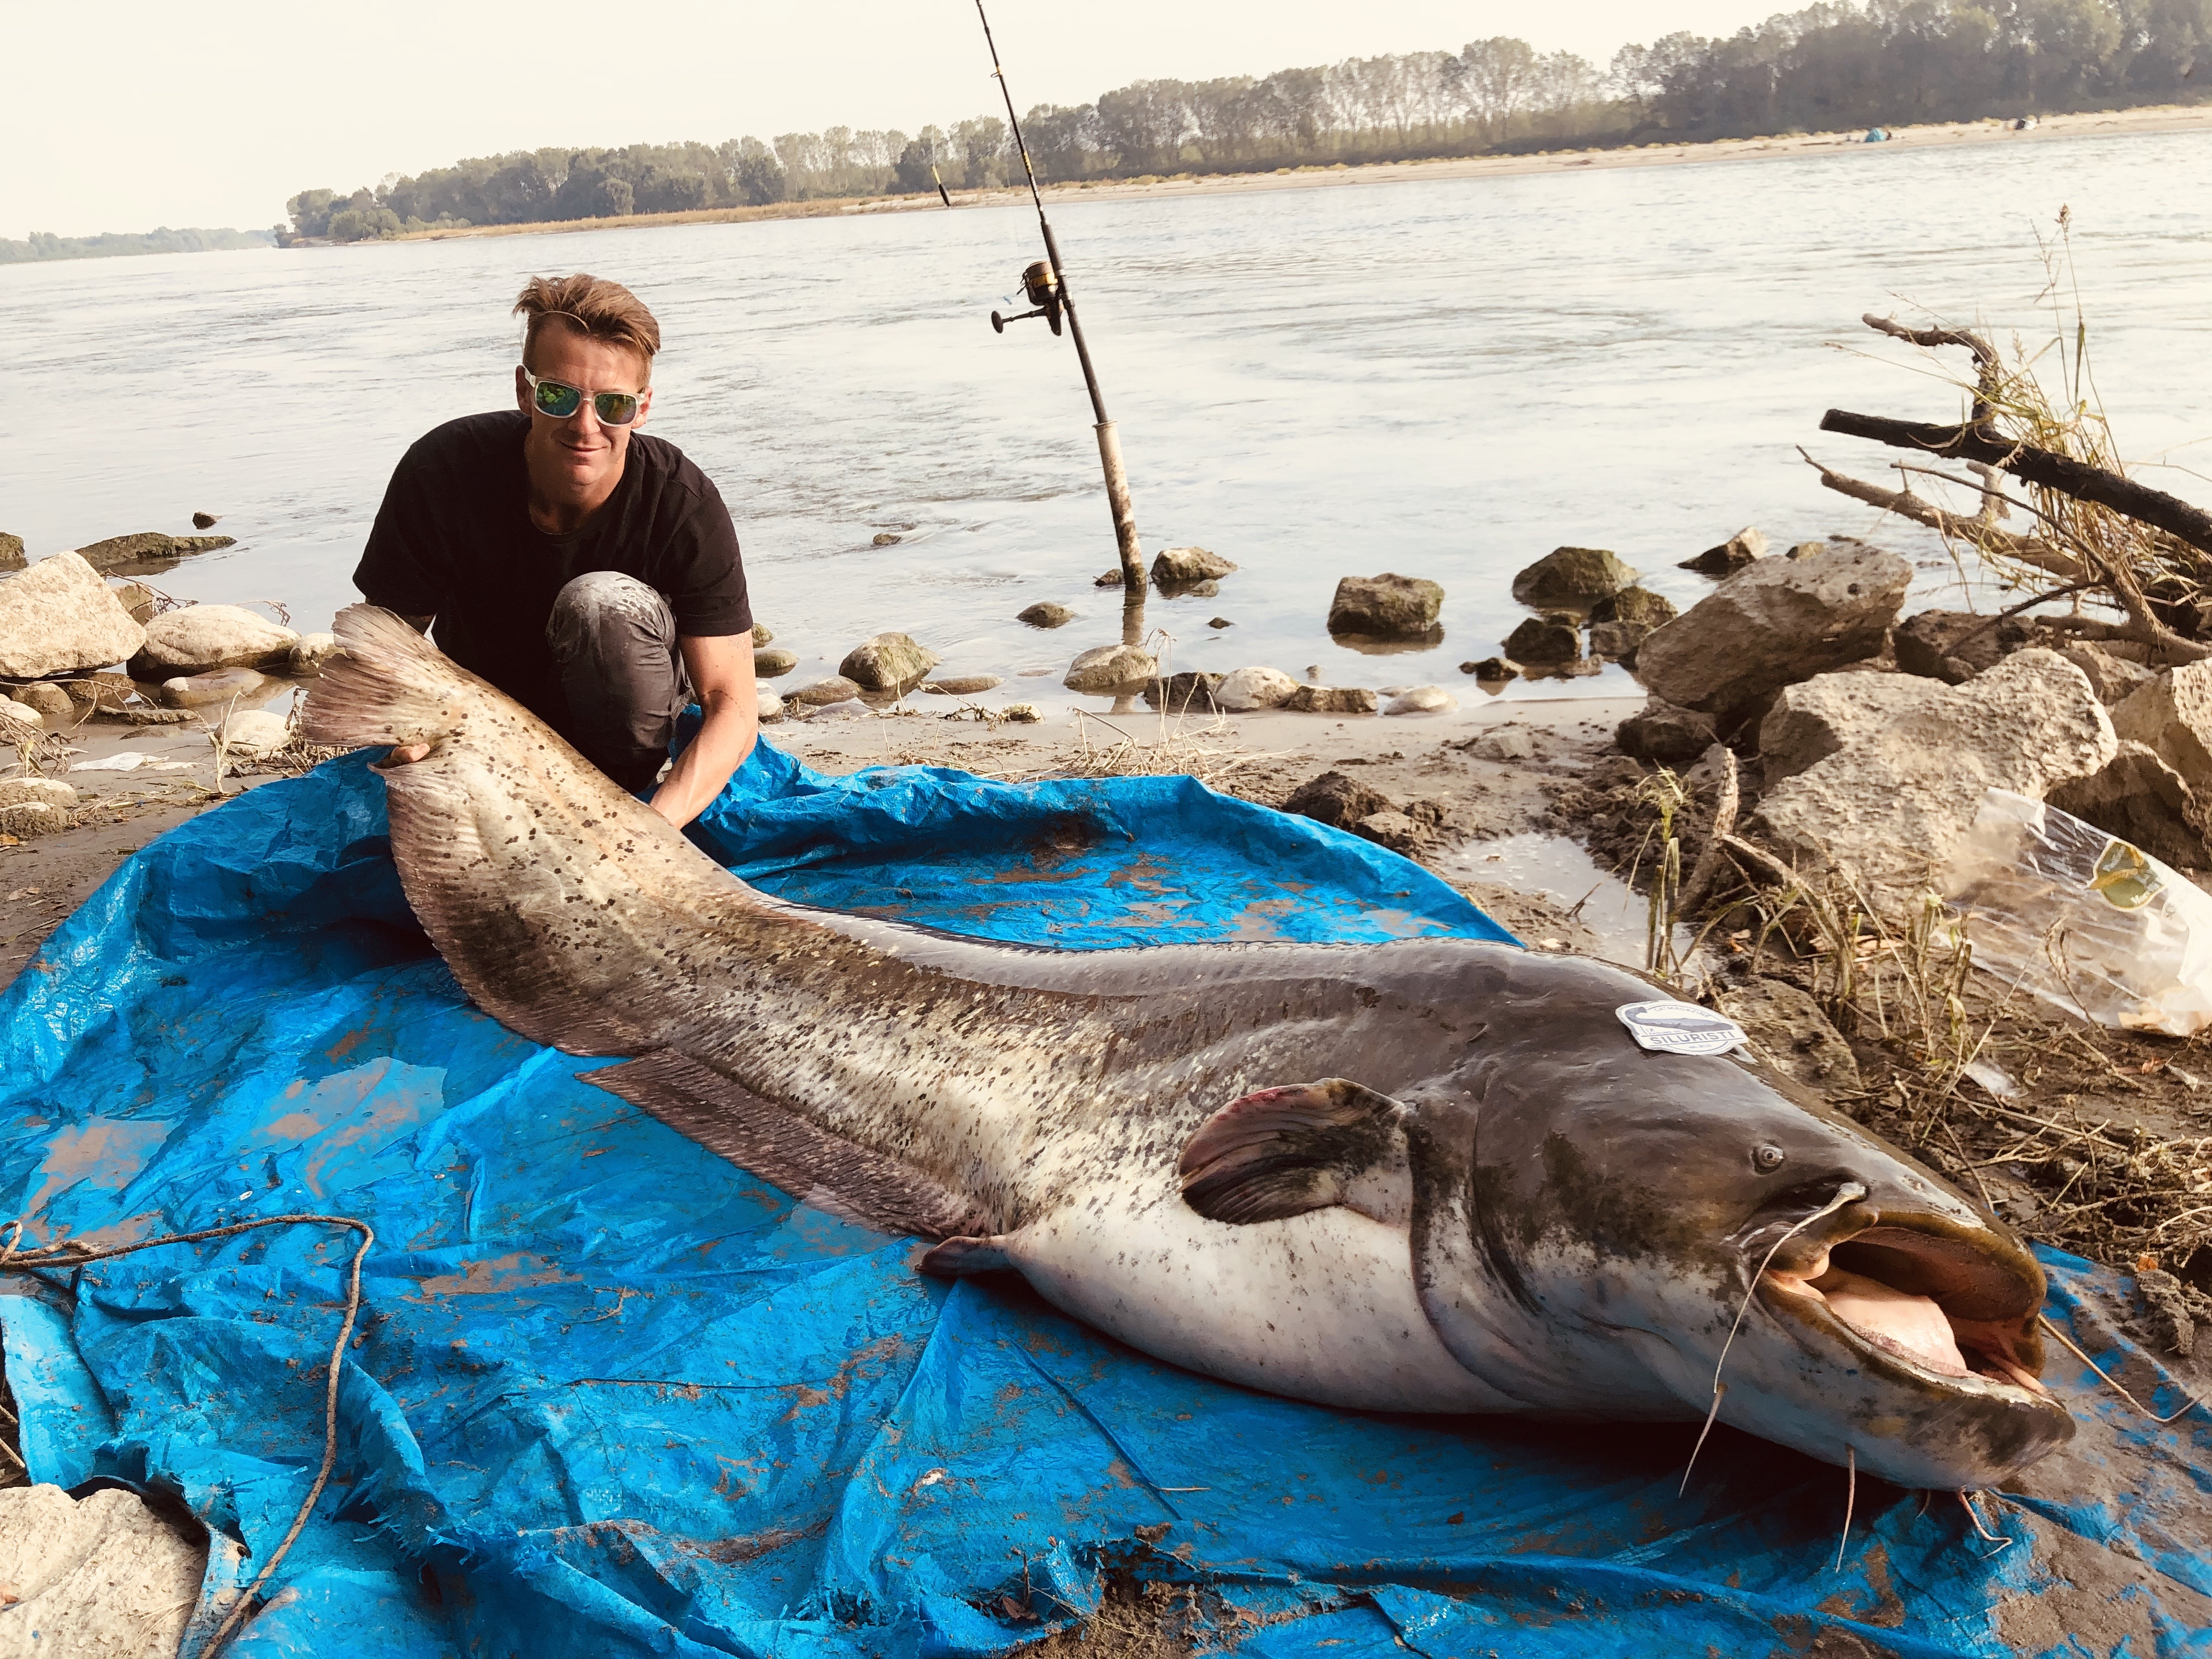 Phill Guidetti Catches Specimen of Catfish of 2.30 Meters Long At The River \